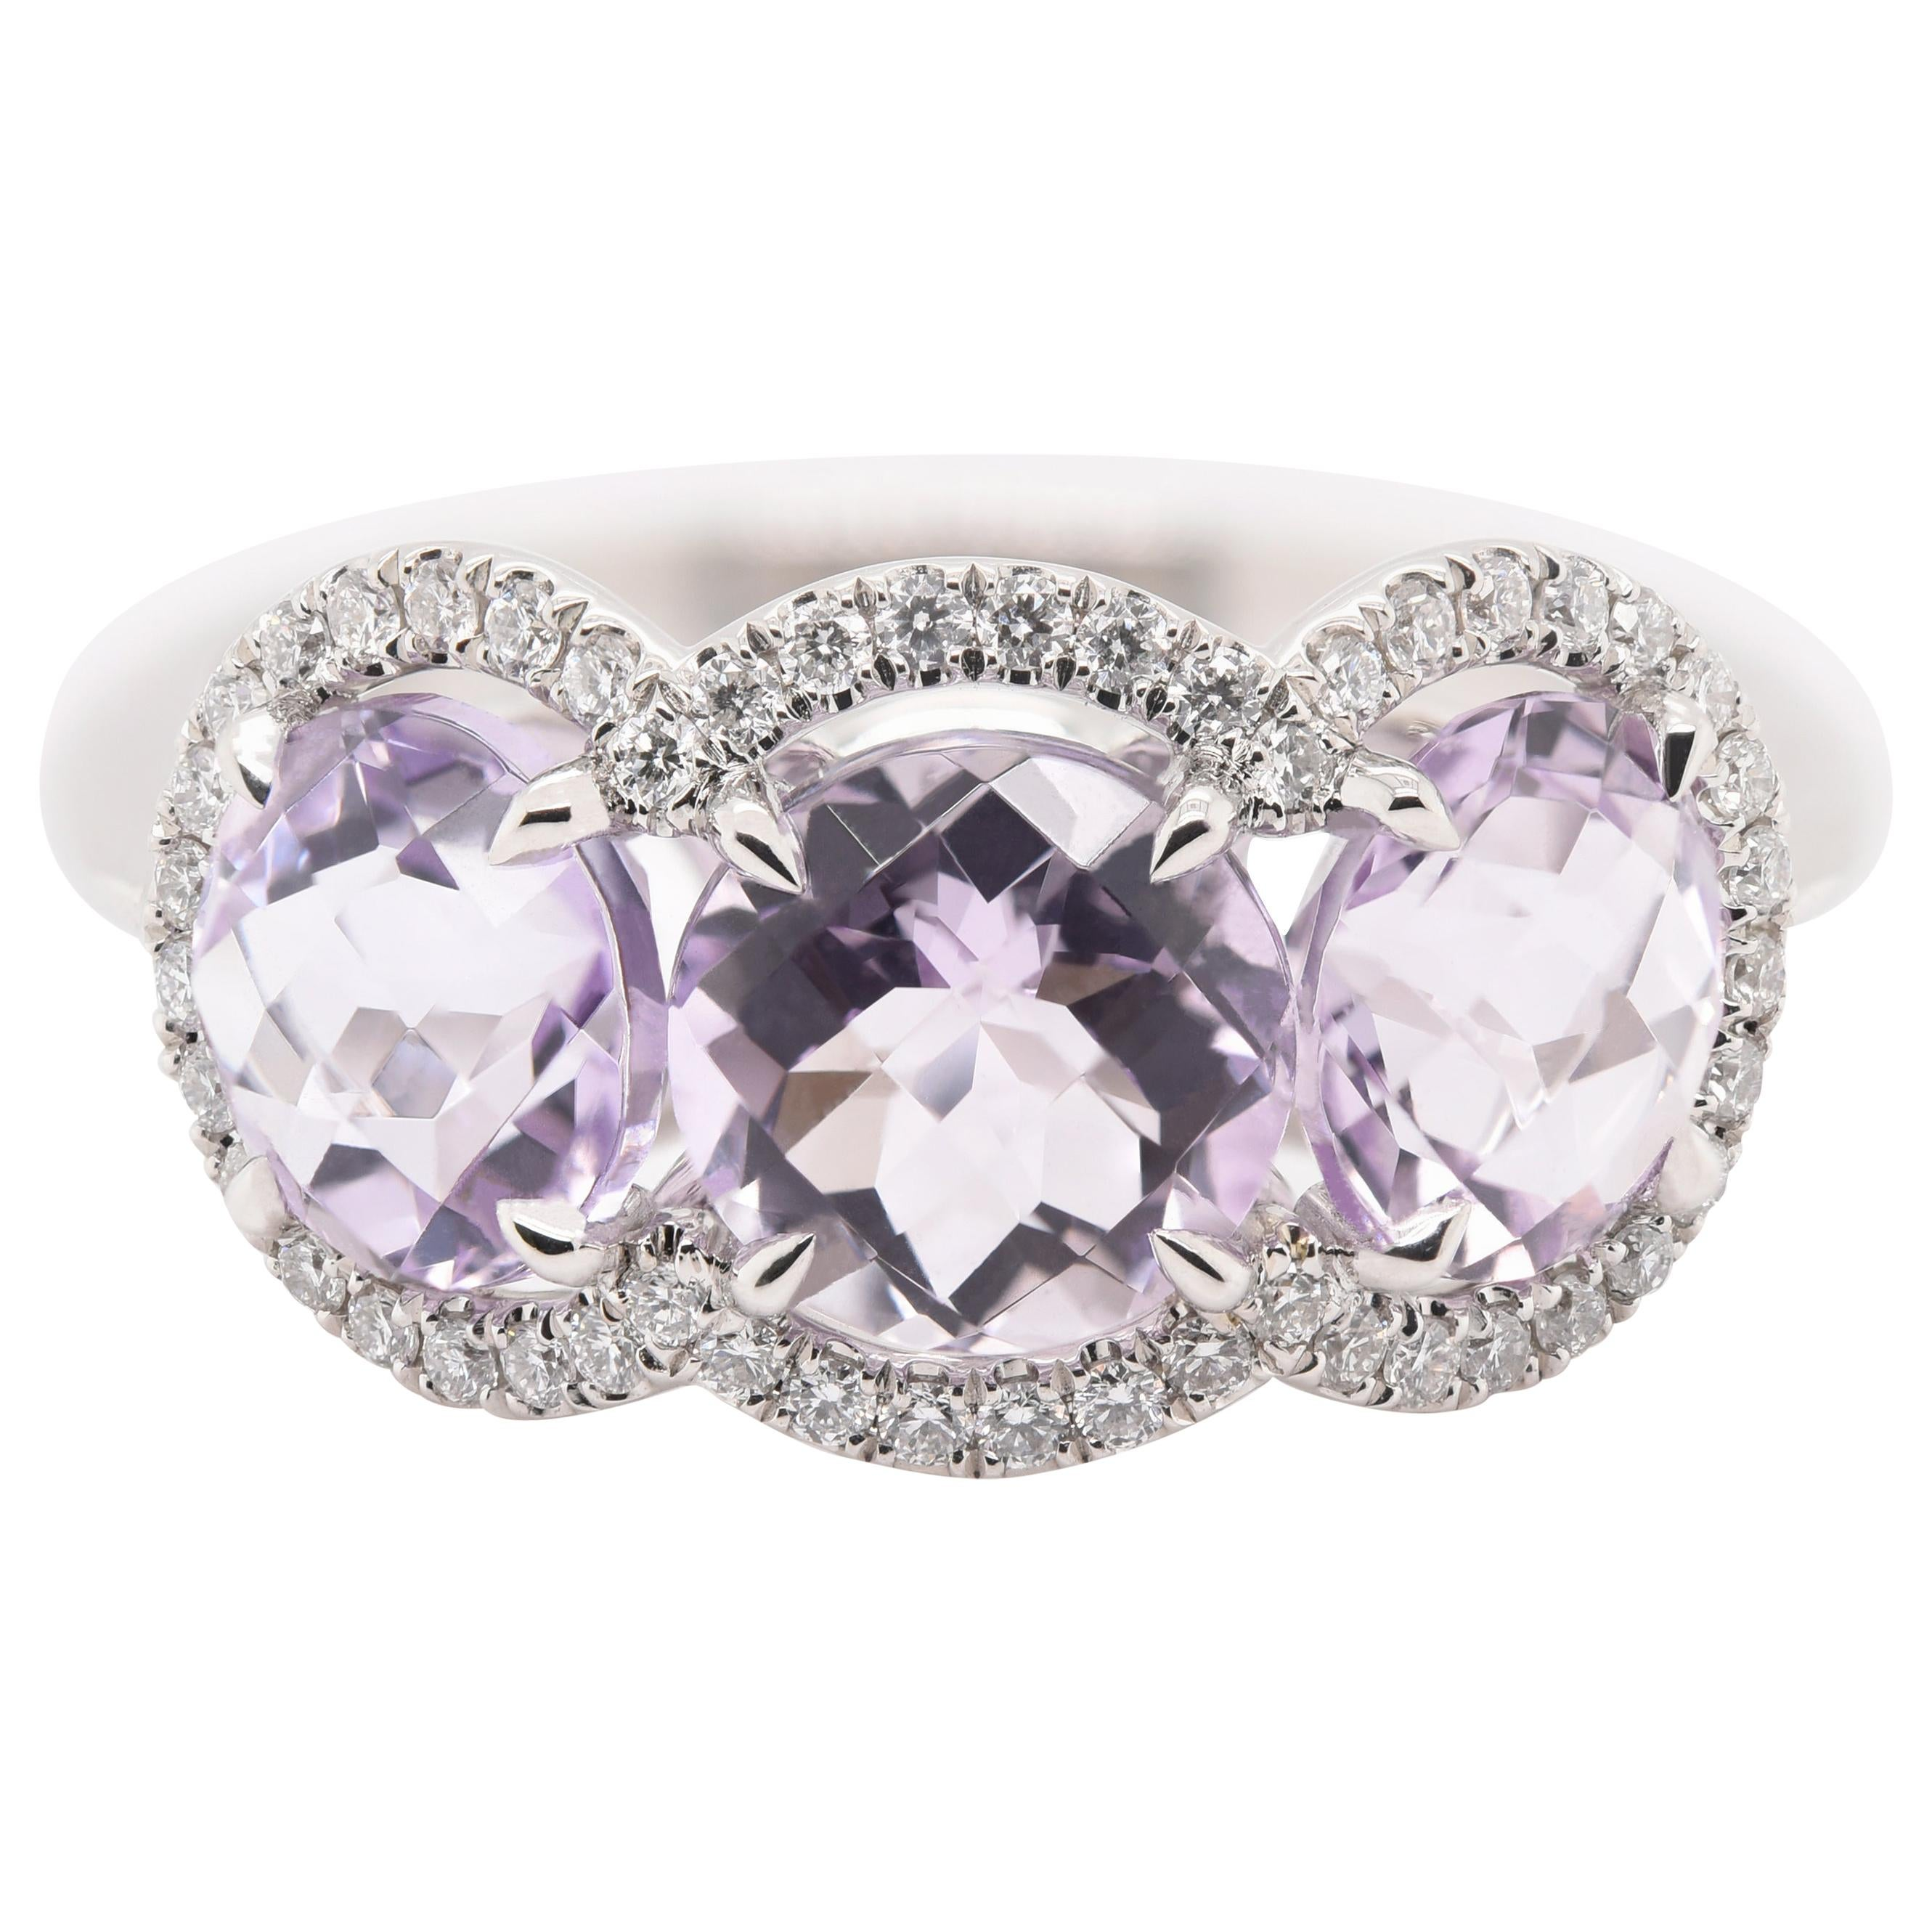 JAG New York Three Amethyst Surrounded by Diamond Halos Ring in Platinum